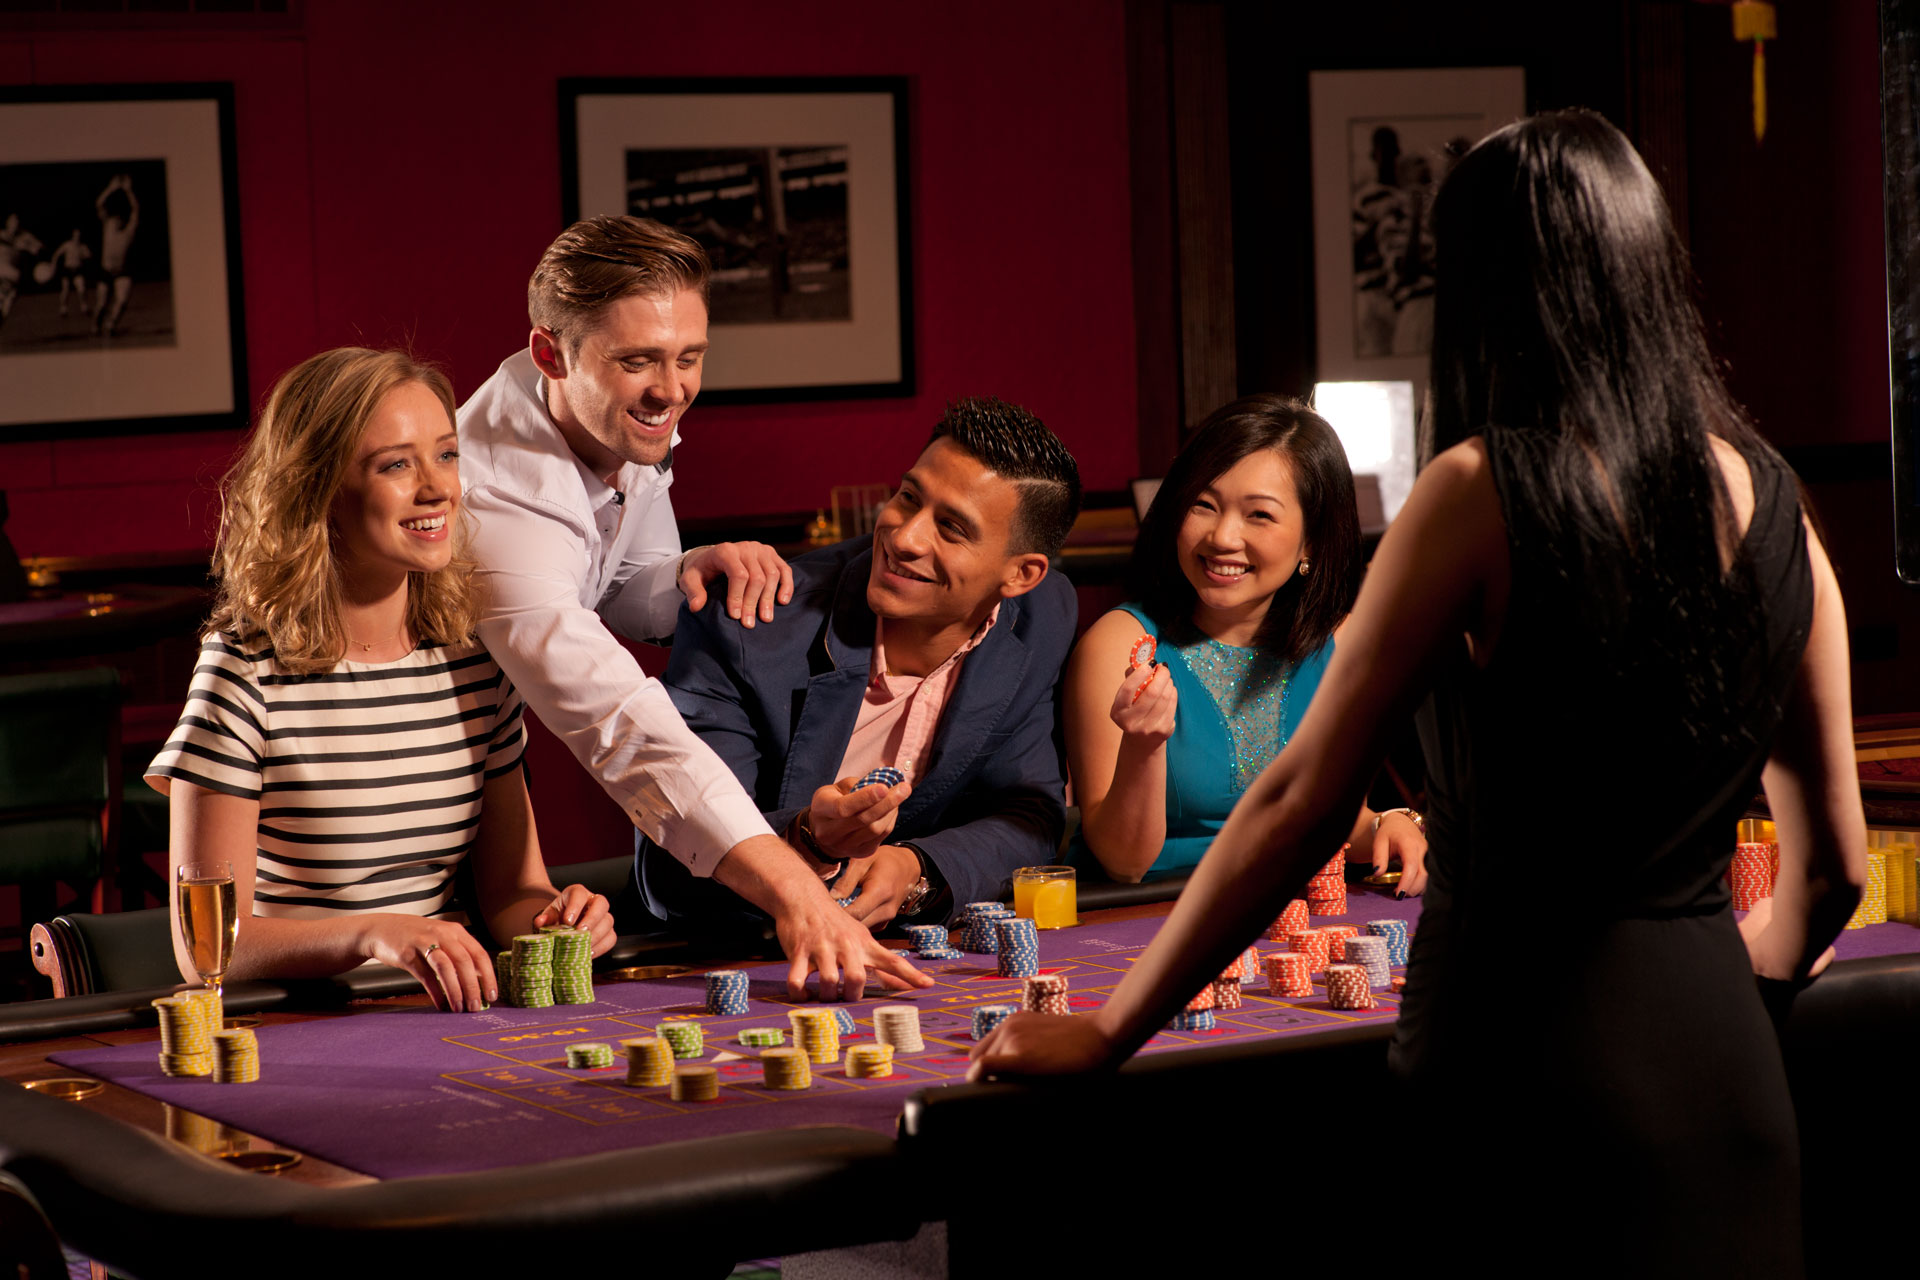 Know how slot games at online casinos attract more people